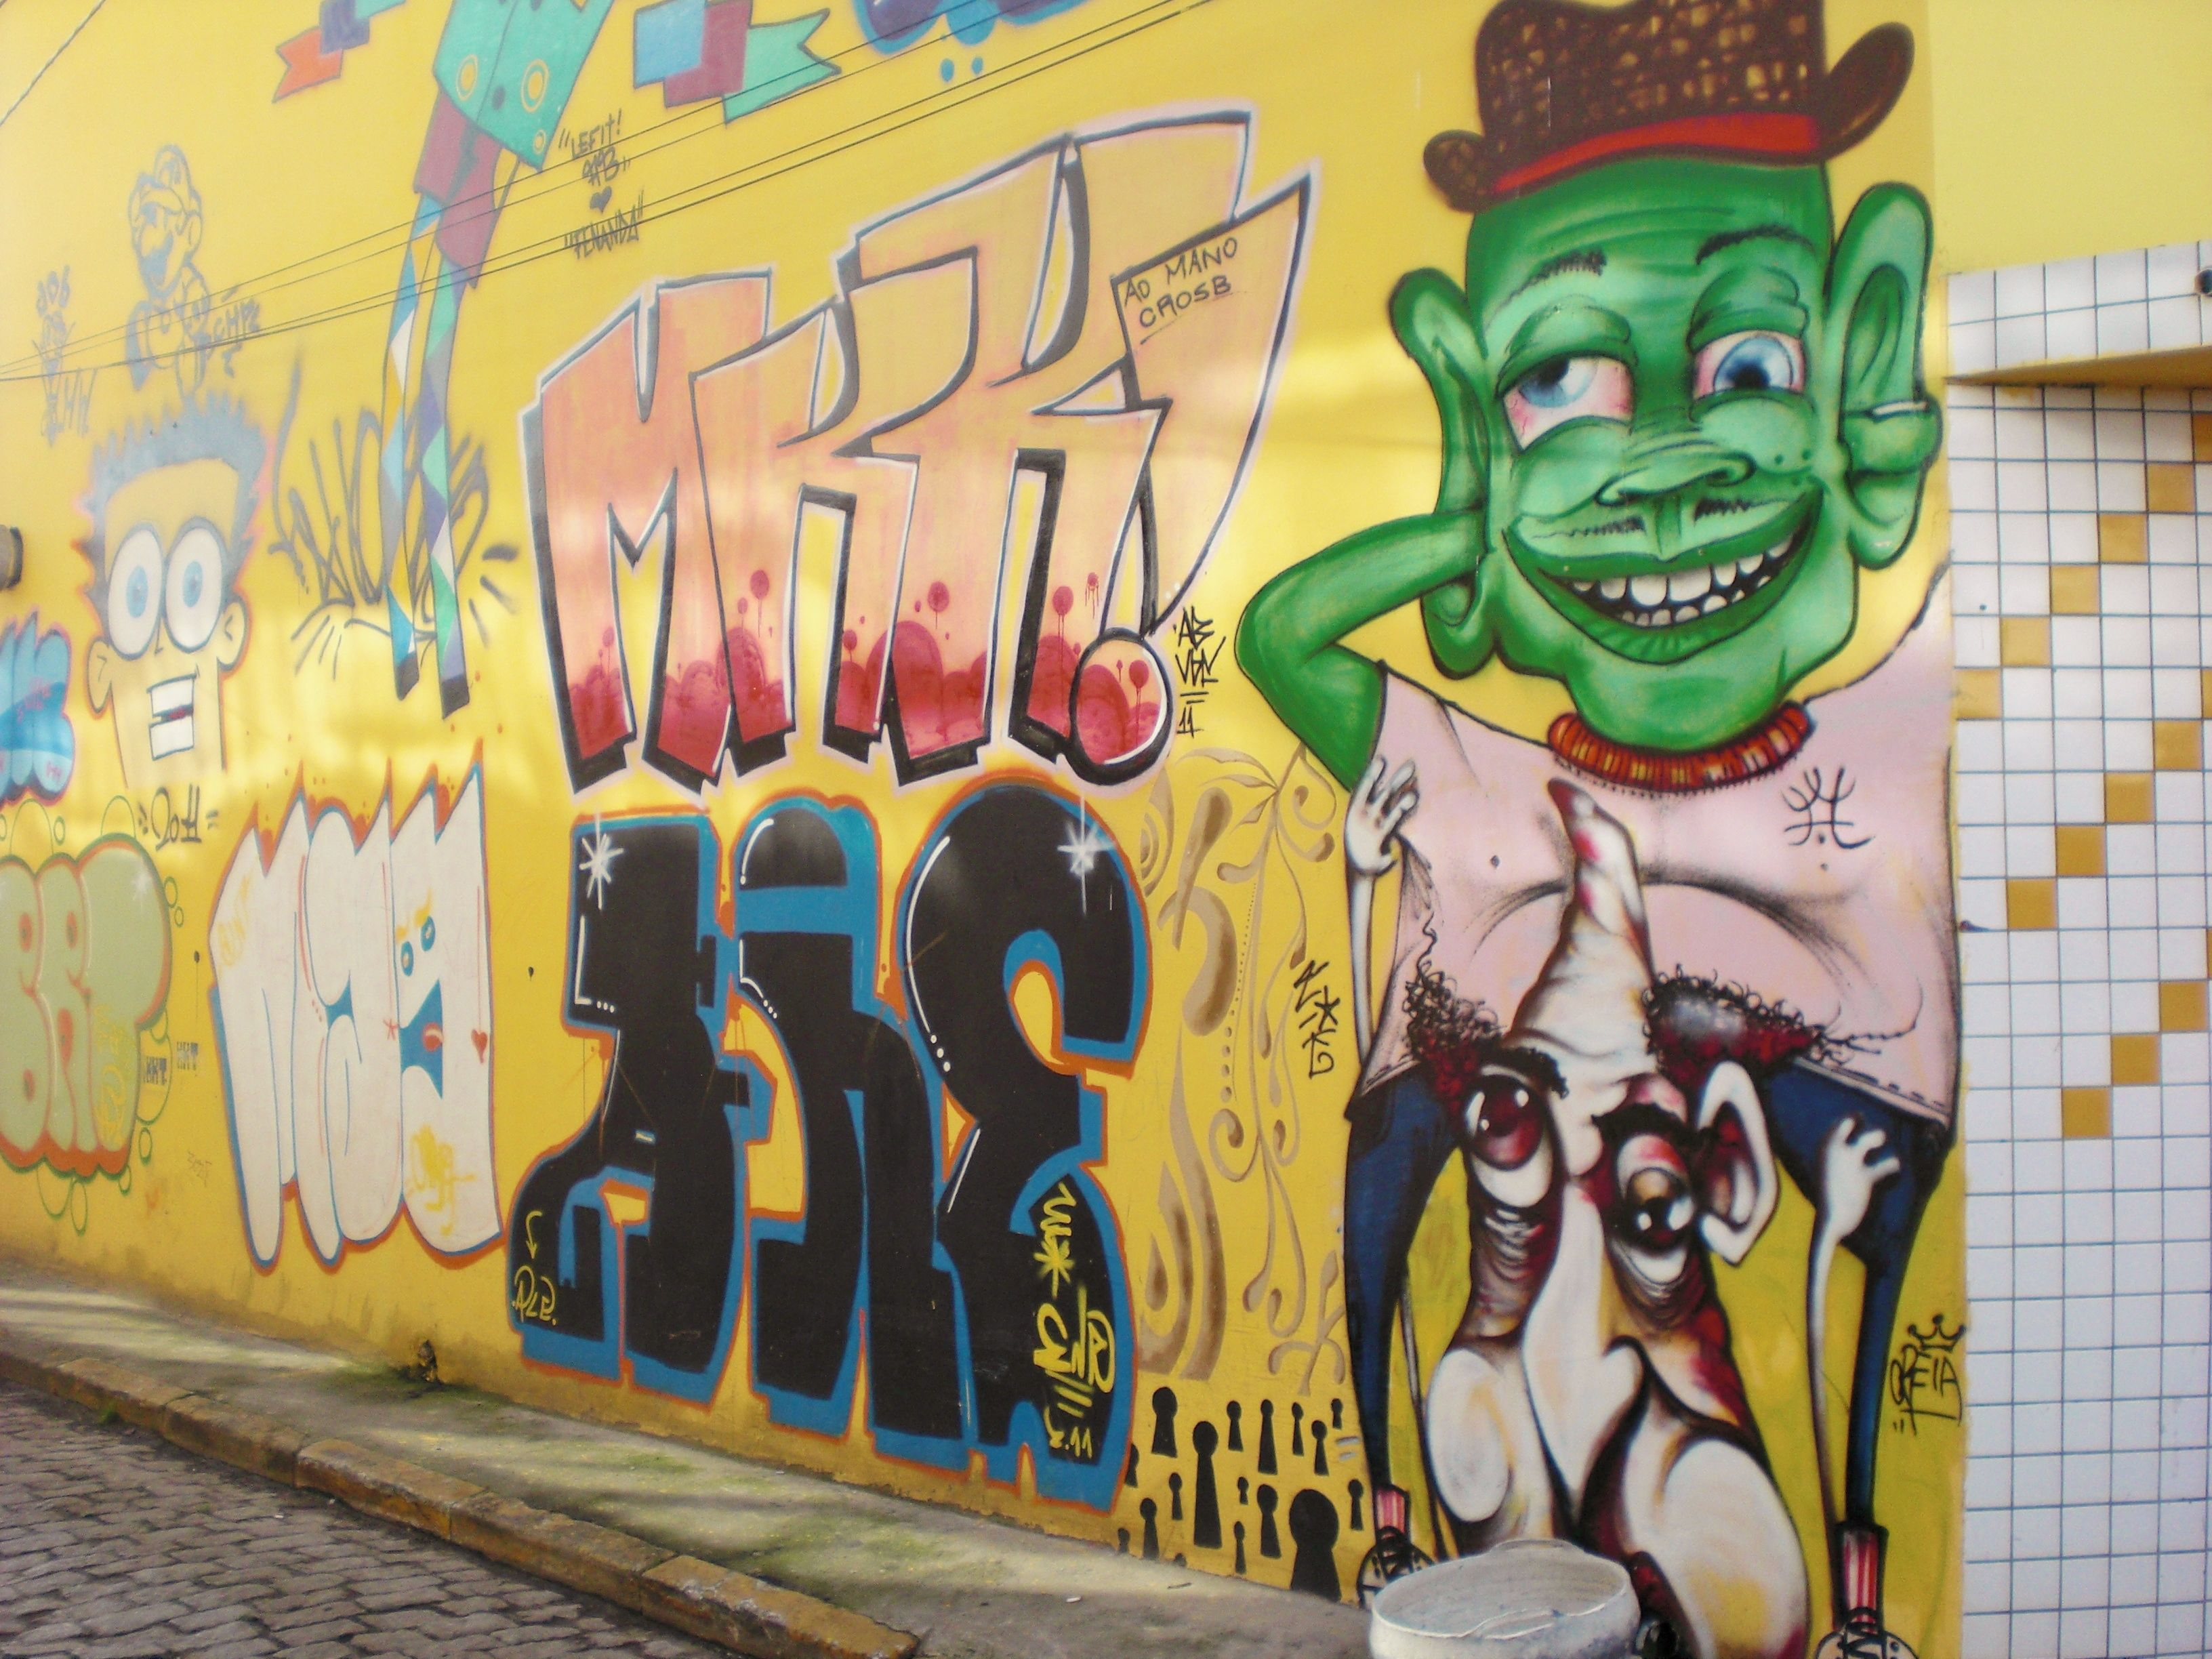 Wall Street Art Graffiti! | Graffiti in Brazil | Pinterest ...